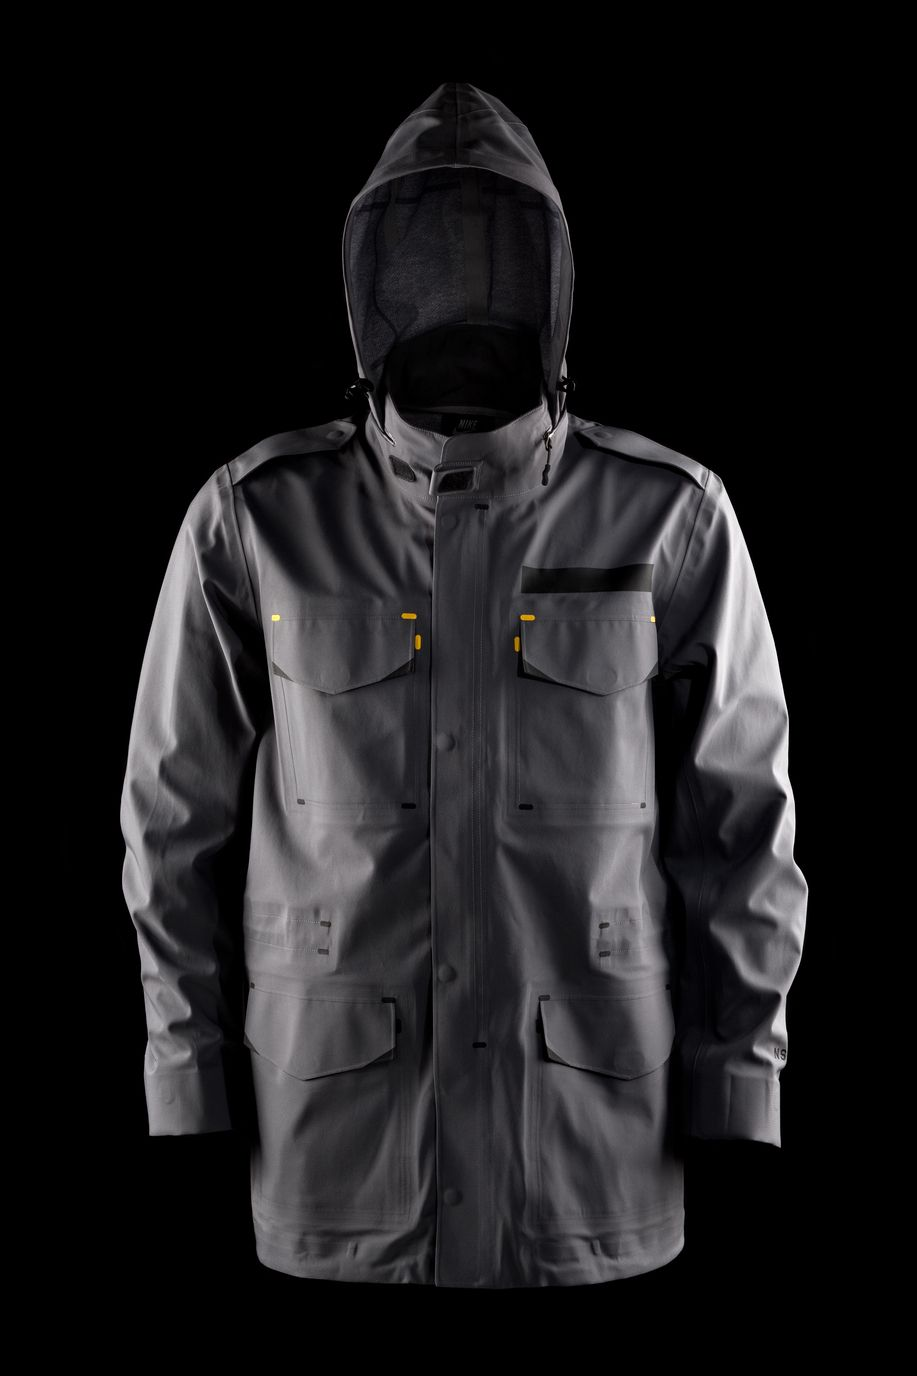 Nike M65 GORE TEX Jacket Gray